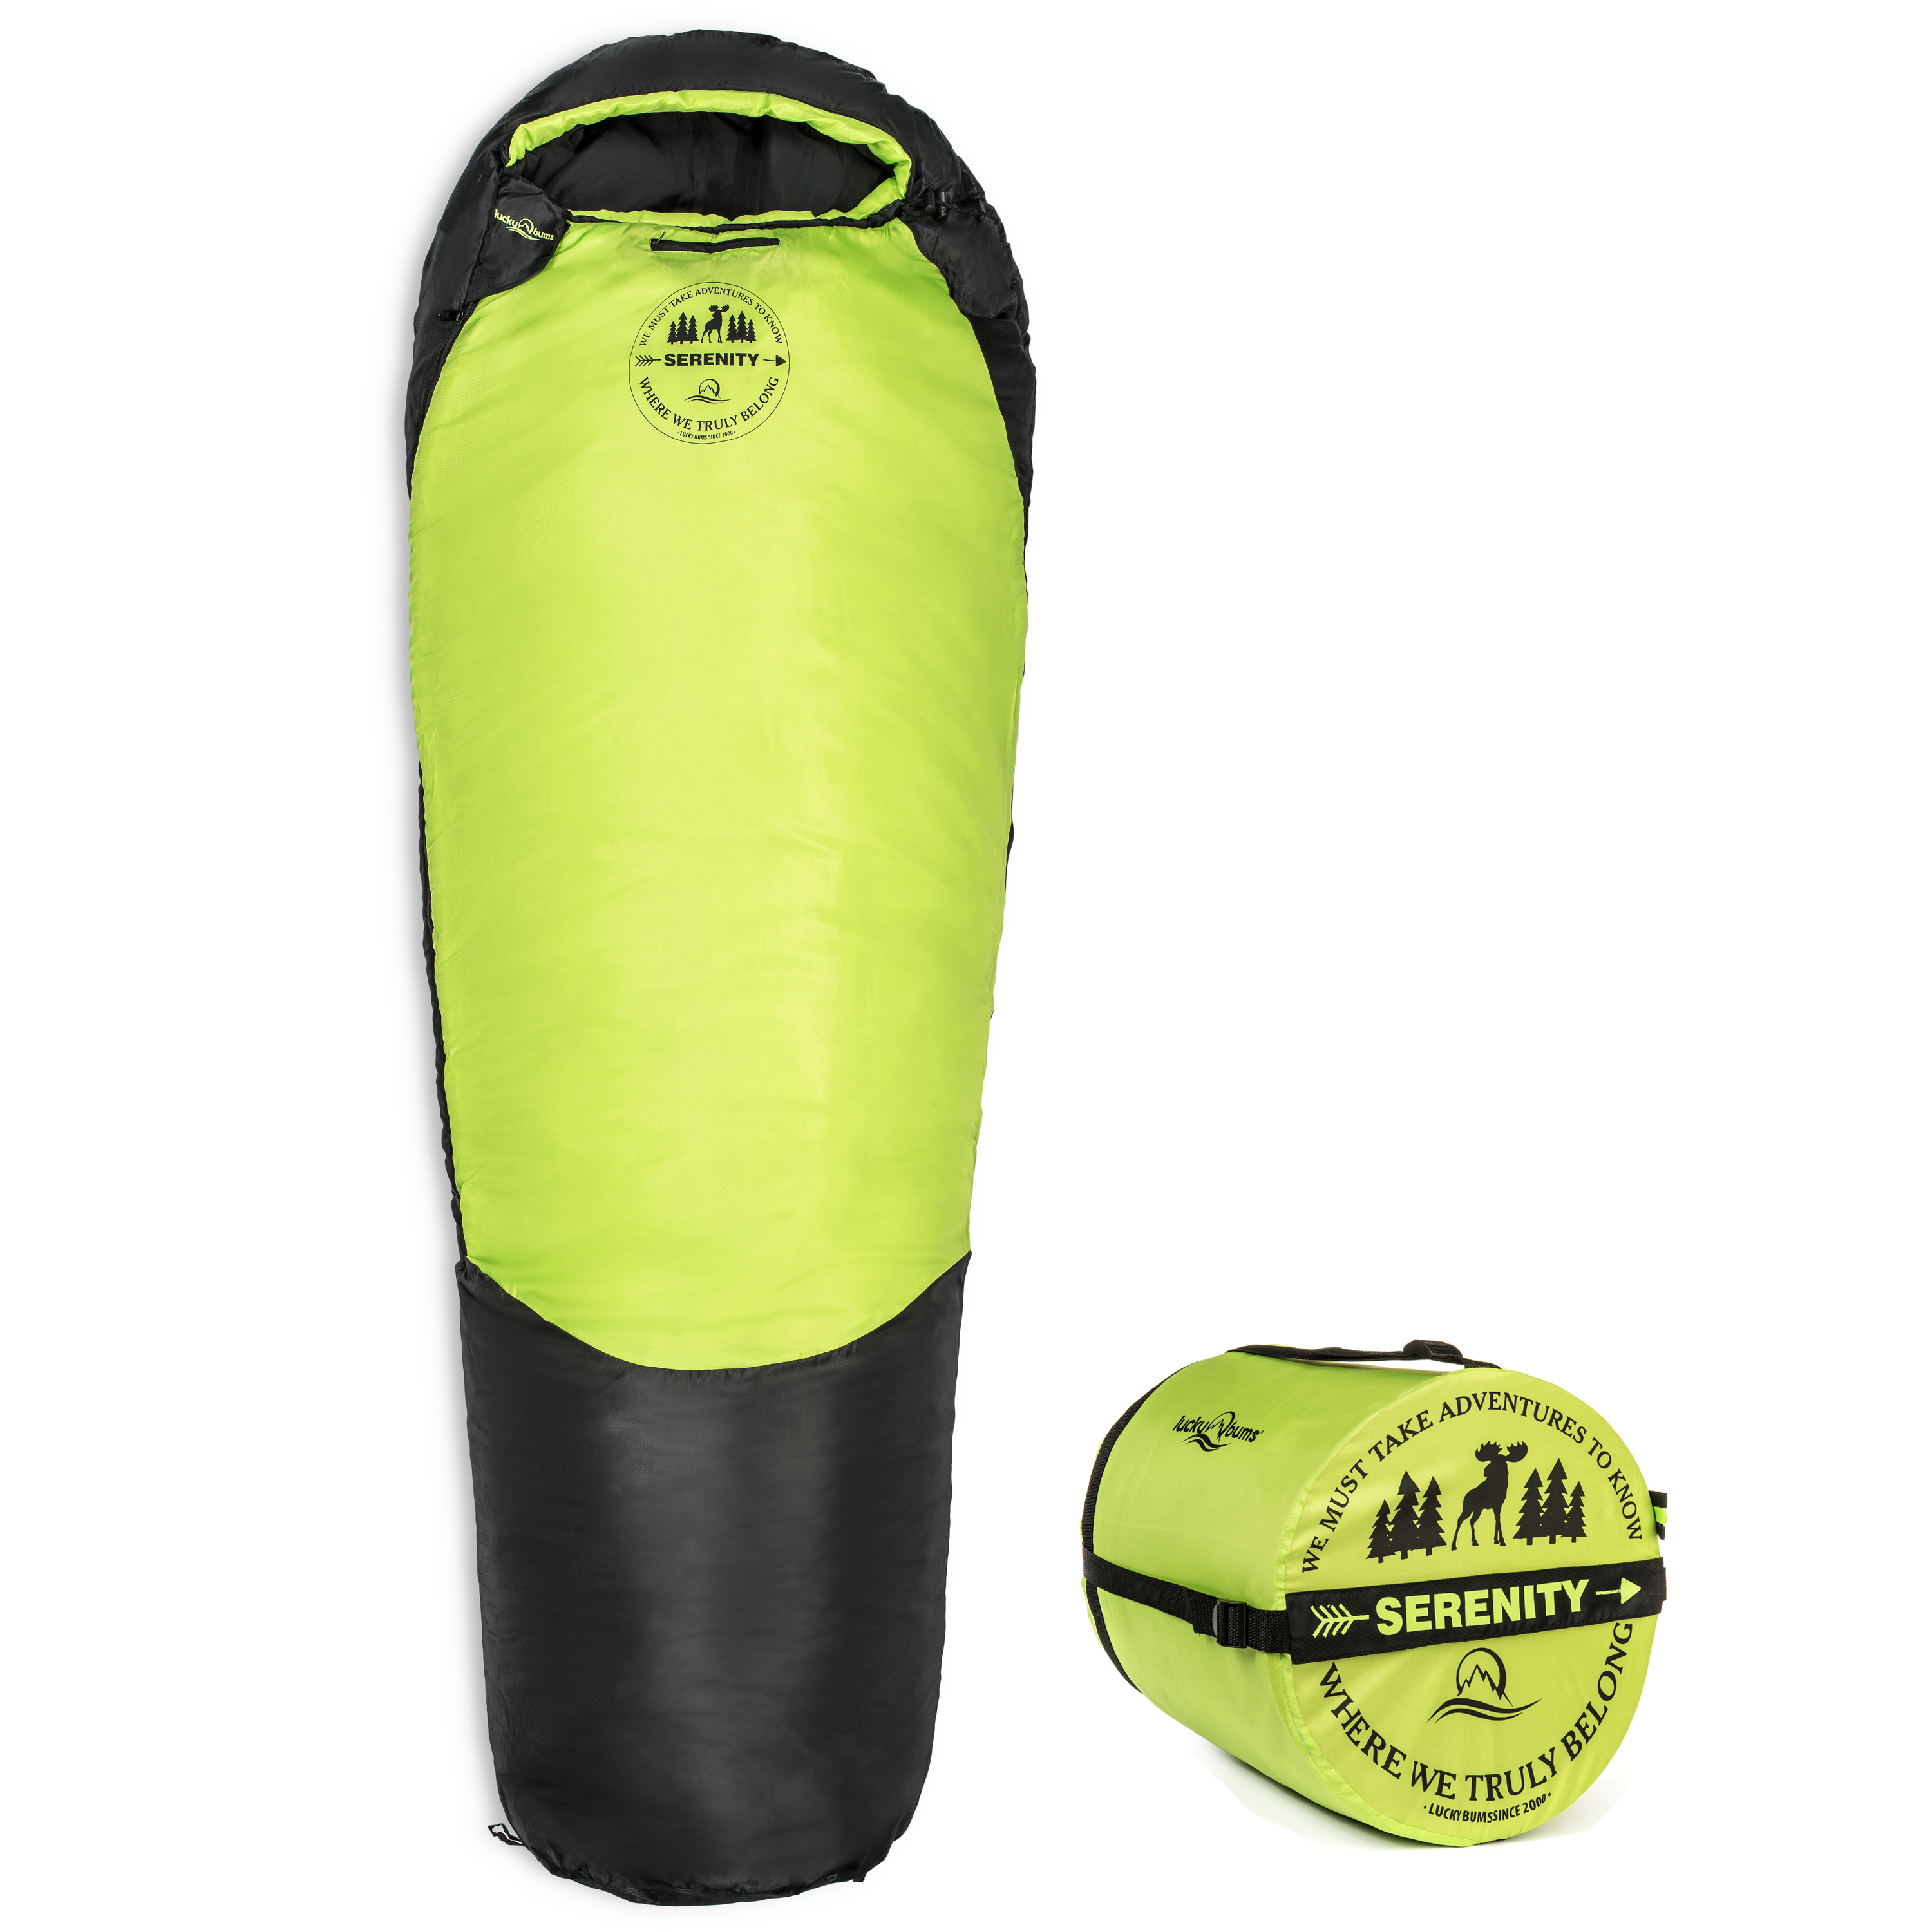 Lucky Bums Youth Serenity II 25F/-4C Temperature Rated Mummy Style Sleeping Bag, Compressing Carry Bag Included, Blue